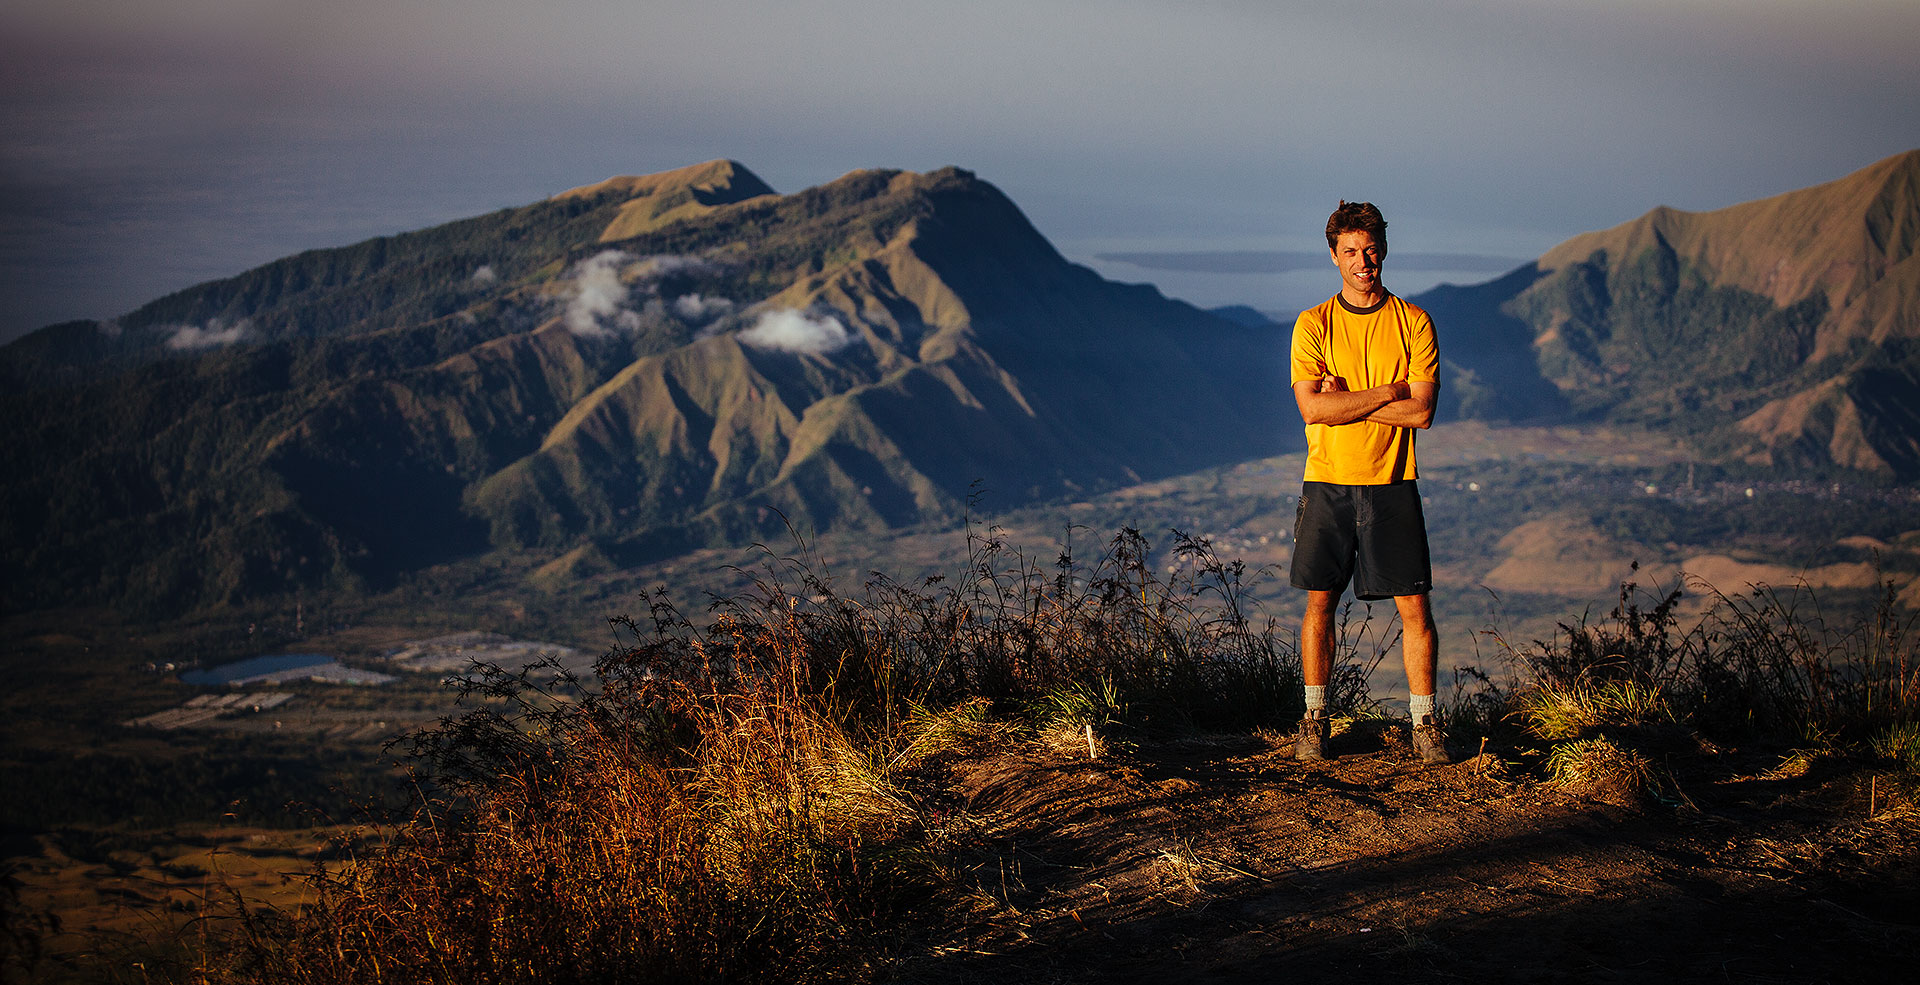 Trekking the Mount Rinjani Volcano in Lombok